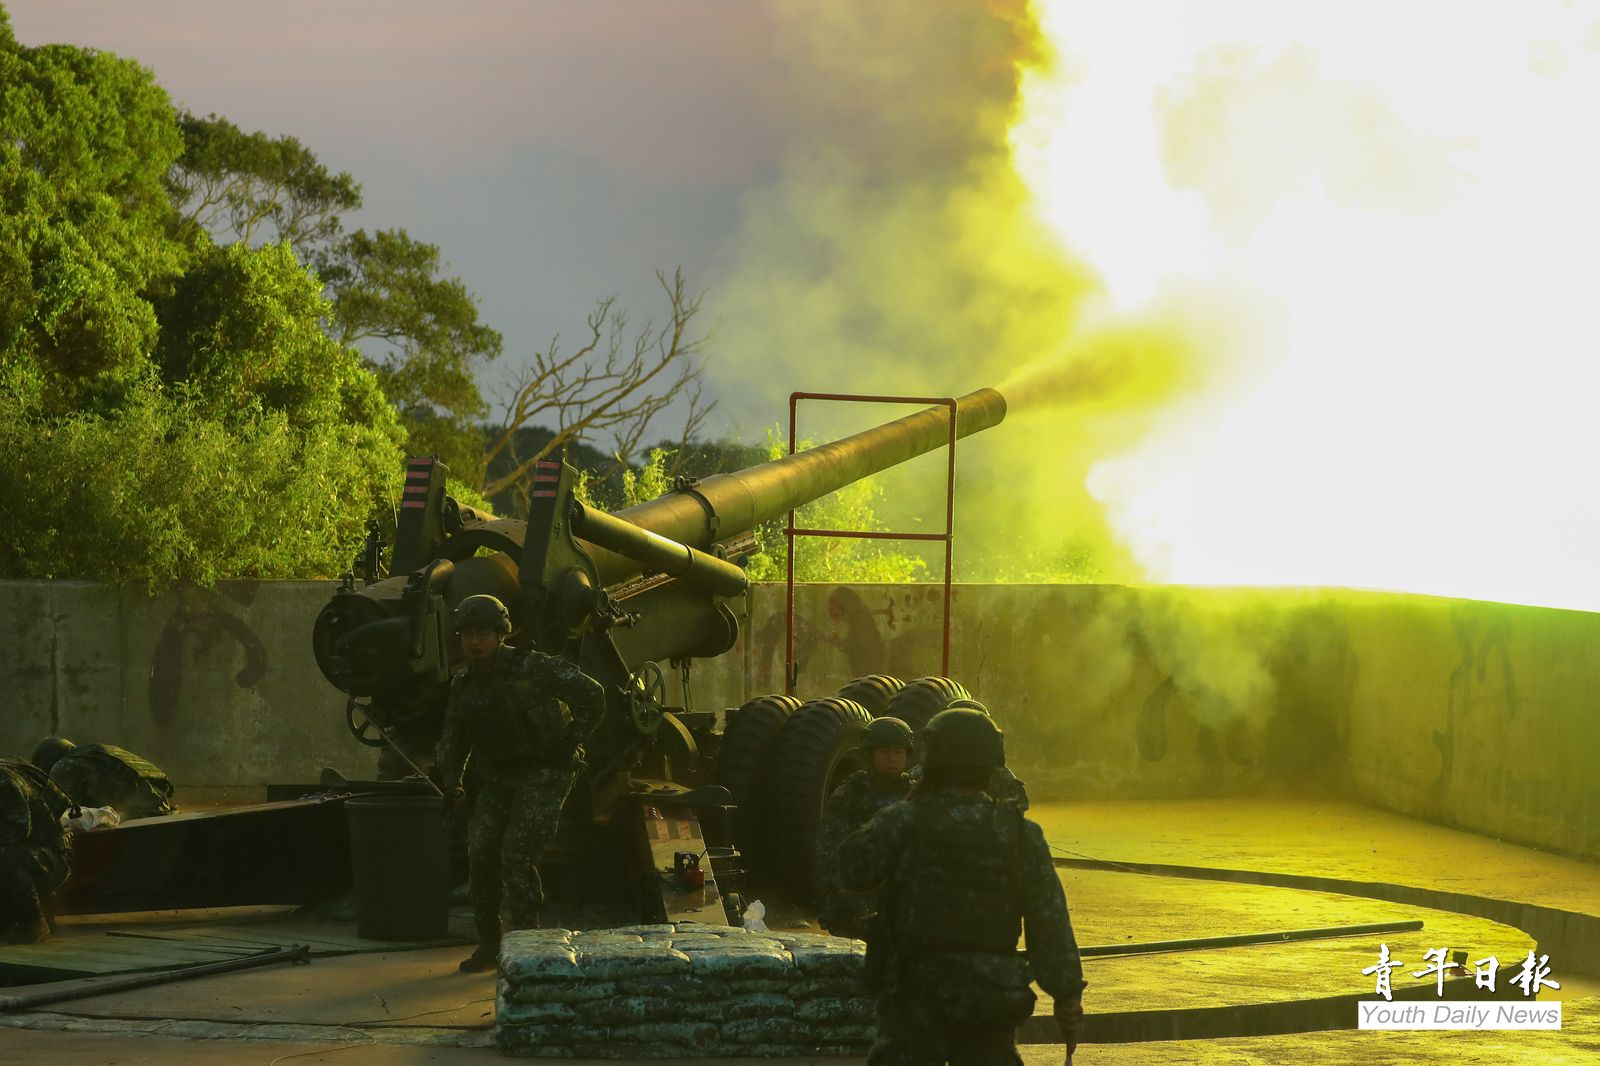 Matsu Counter-landing Drills Demonstrated Resolves to Defend Country